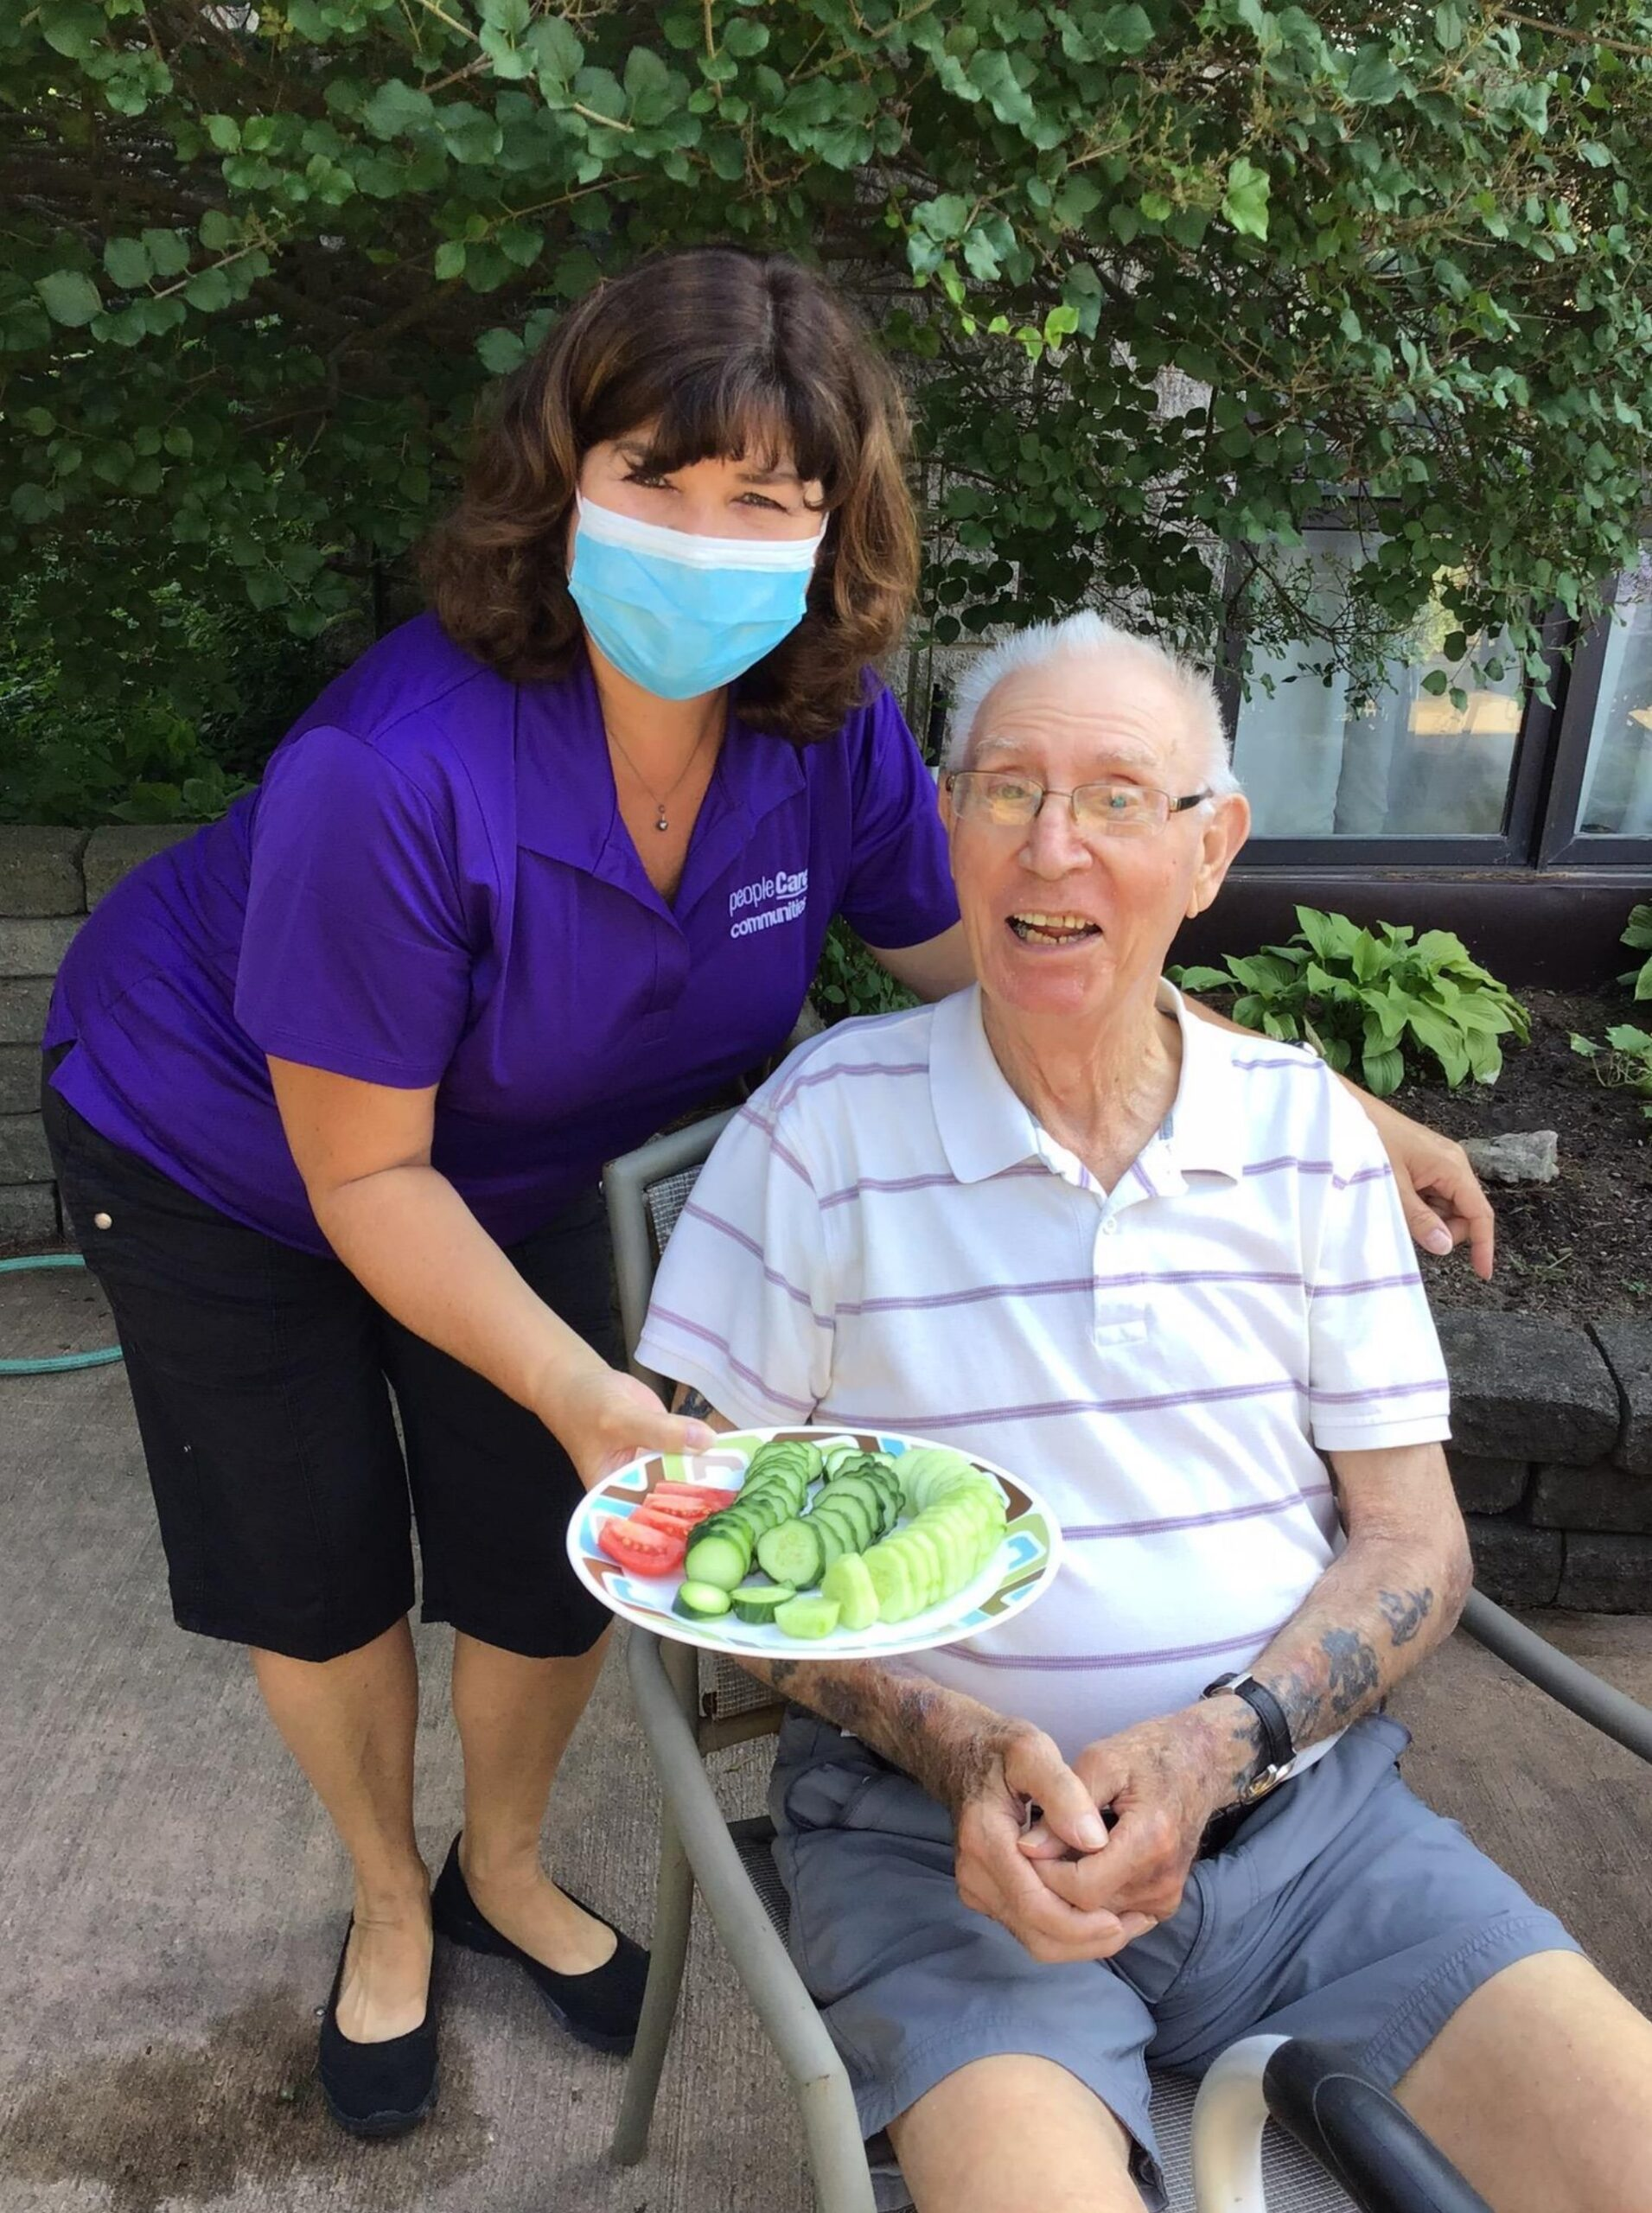 Staff member holding vegetables from the garden while standing next to a resident from a long-term care home